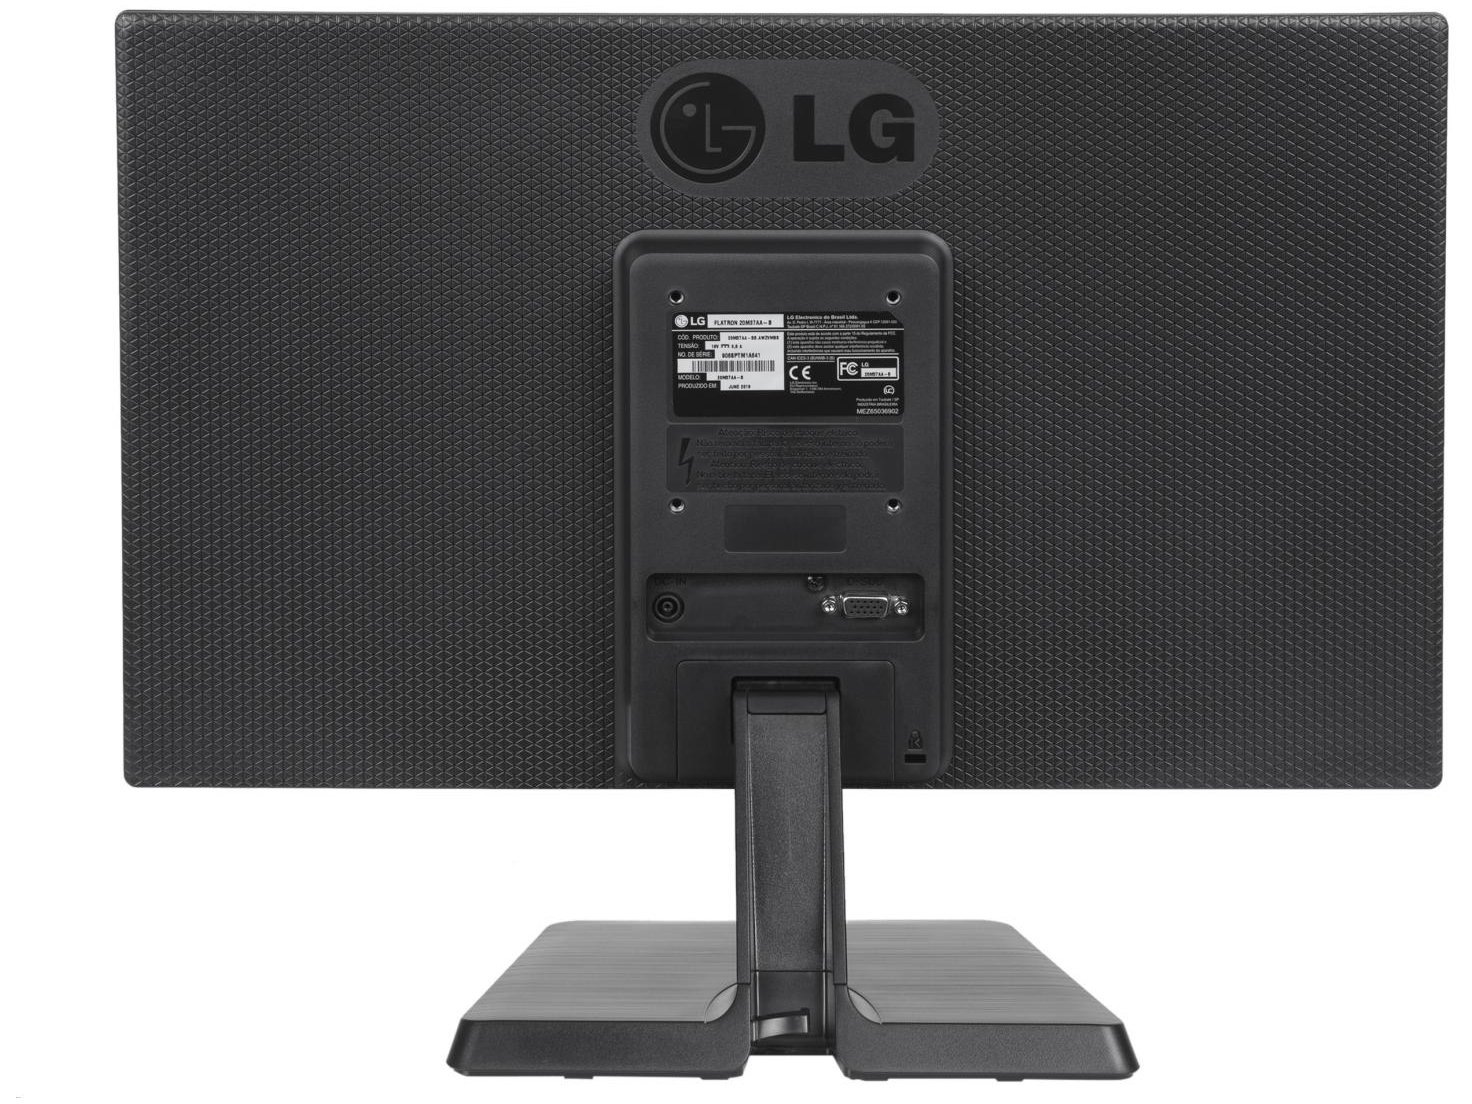 Foto 7 - Monitor para PC LG LED Widescreen 19,5 - 20M37AA